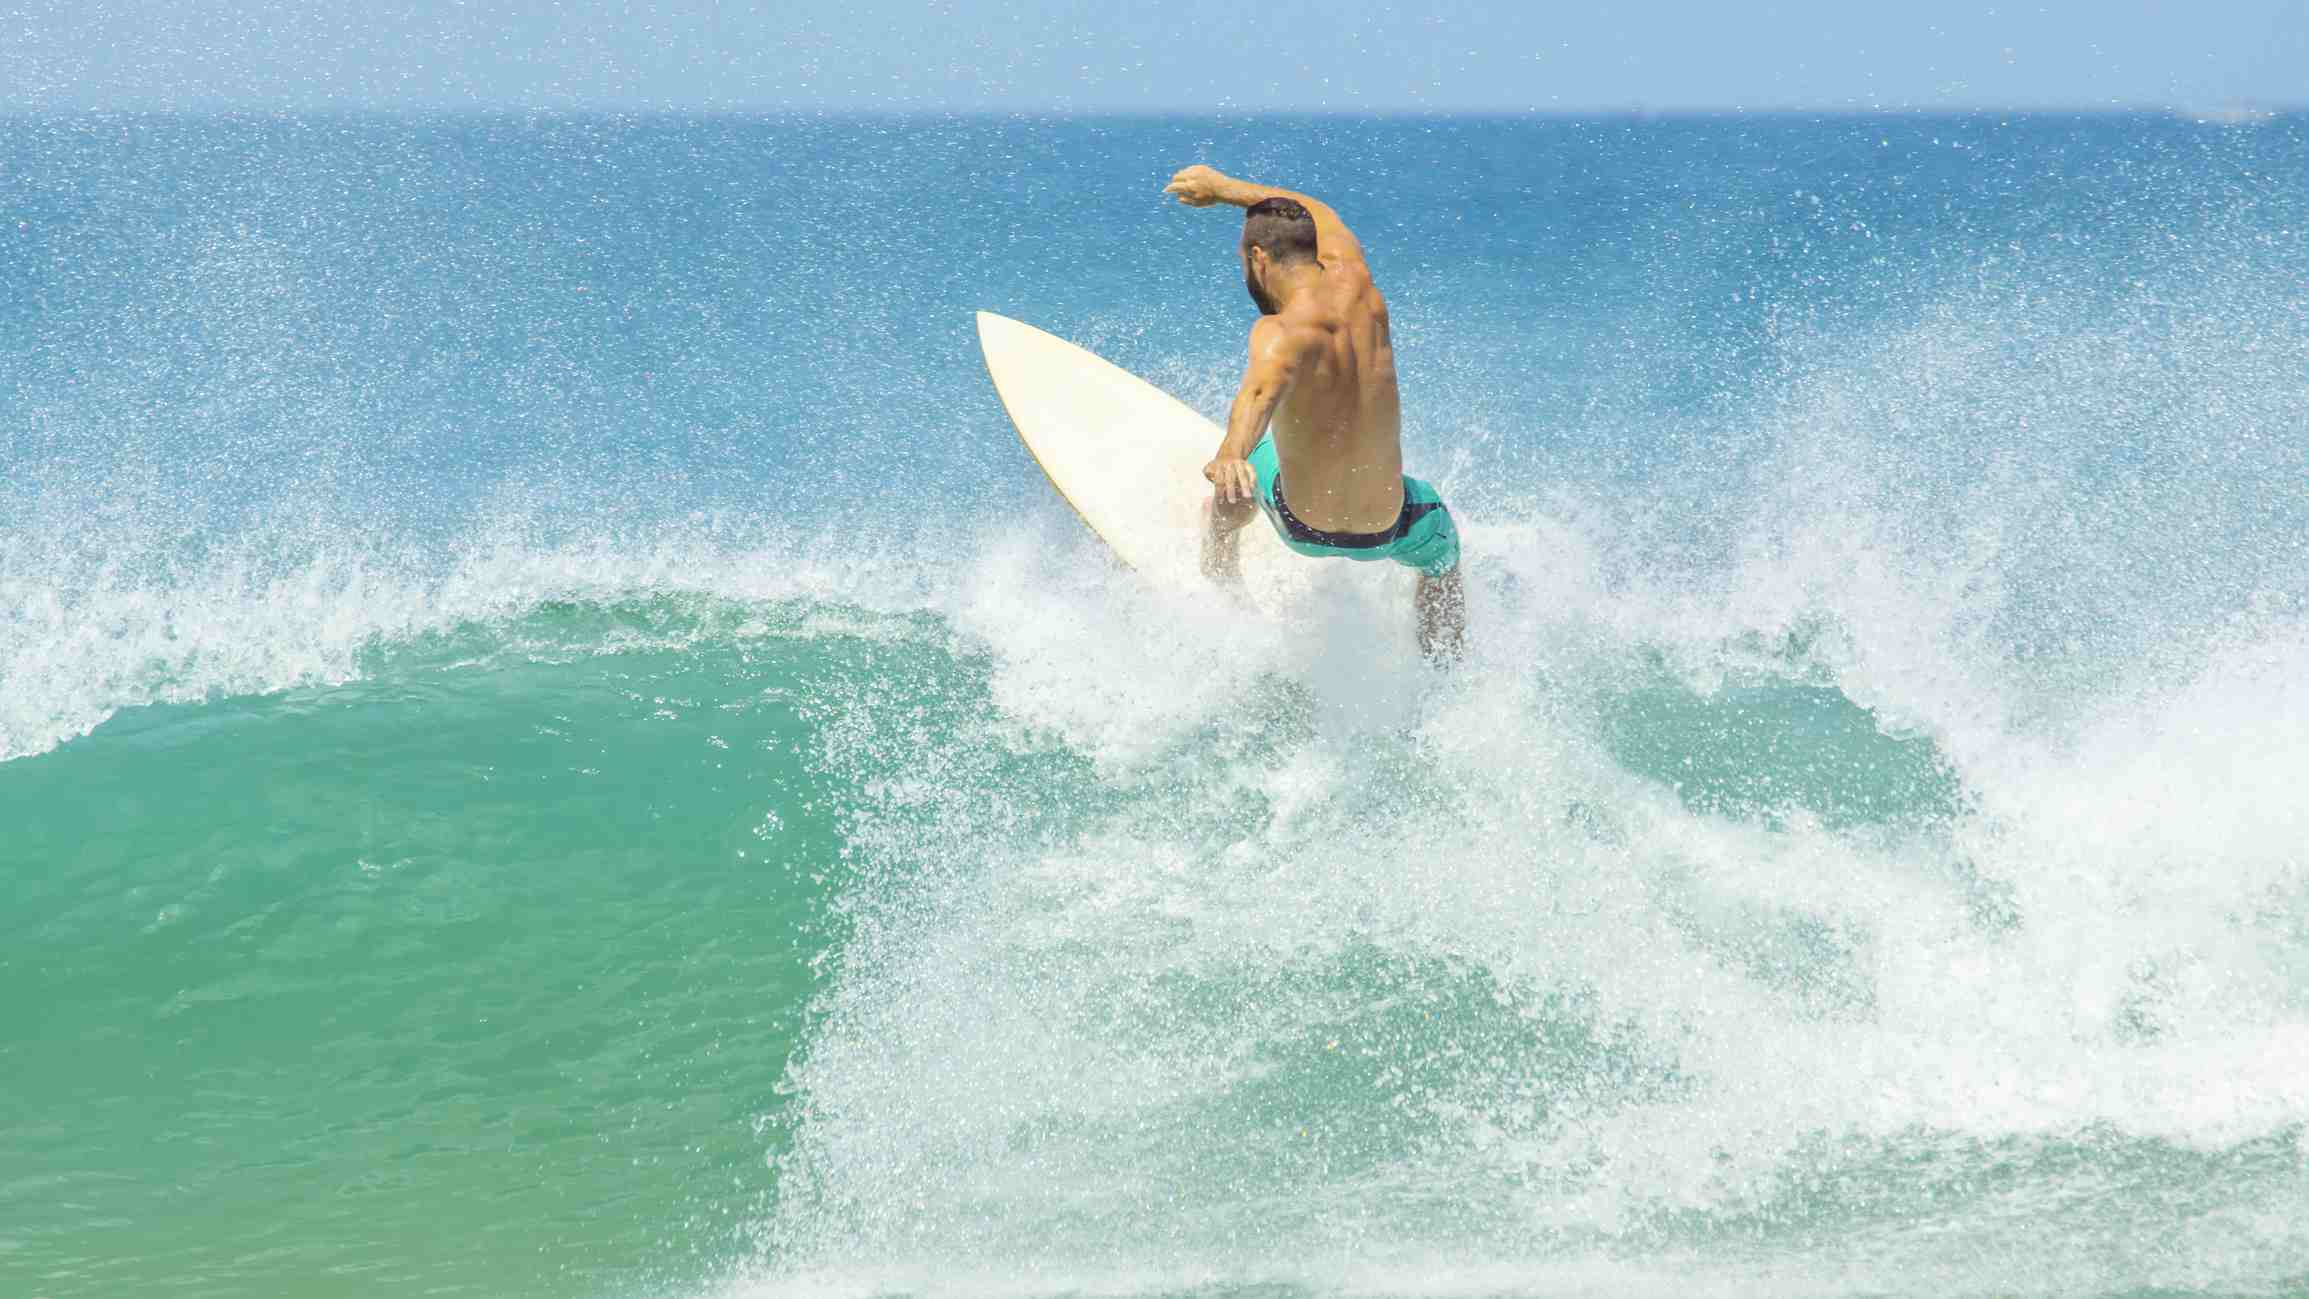 Surfer riding a wave at Tamarindo and Langosta Beaches, Costa Rica